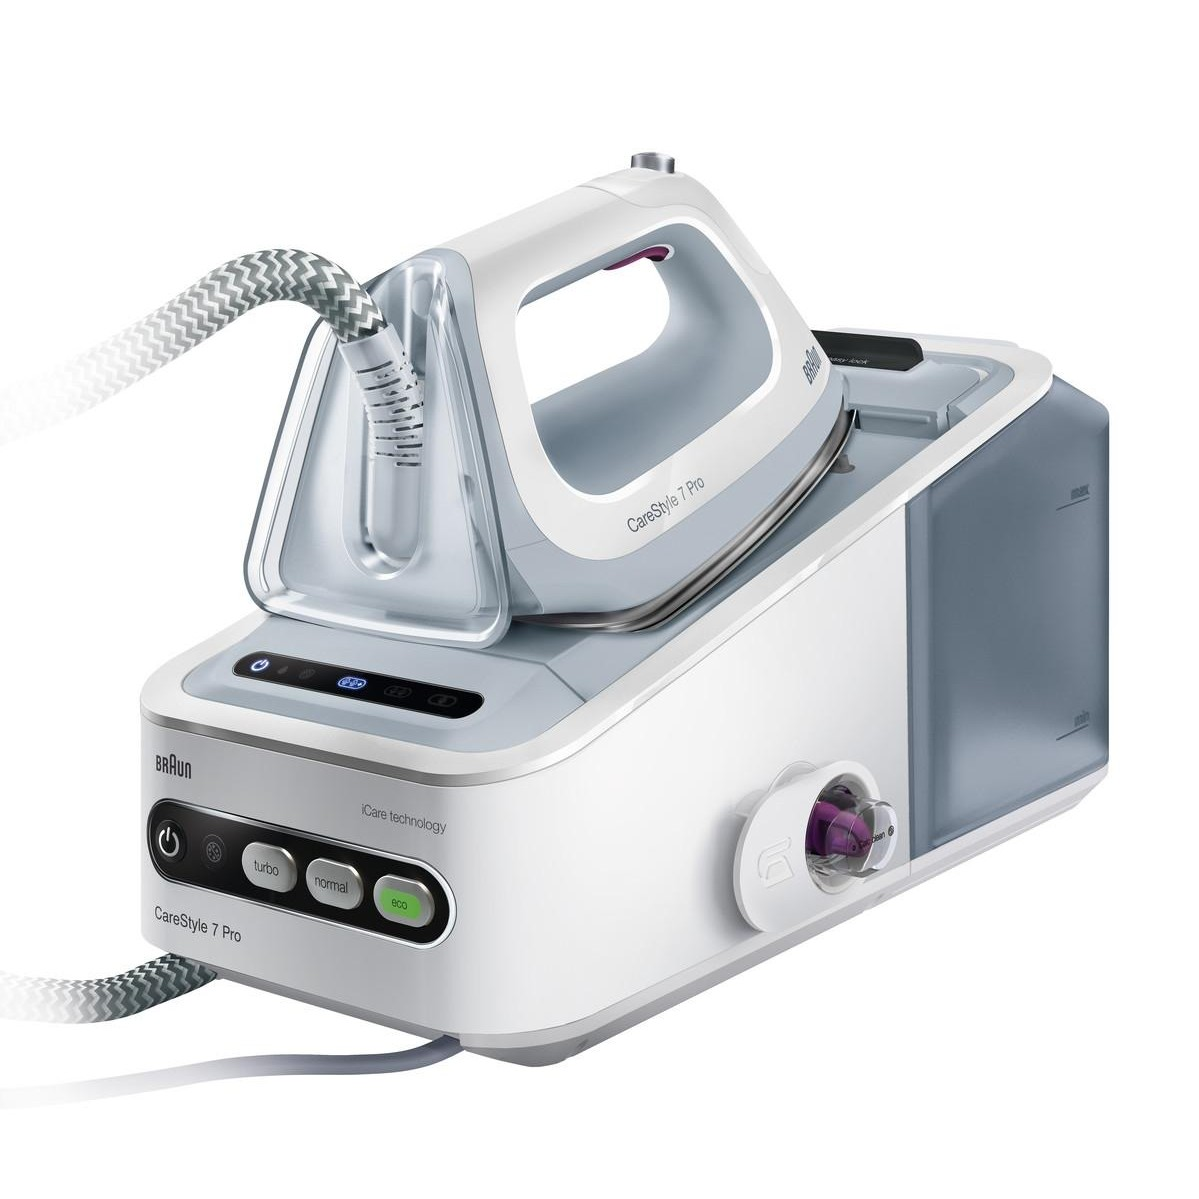 Braun CareStyle 7 Pro IS 7055 WH